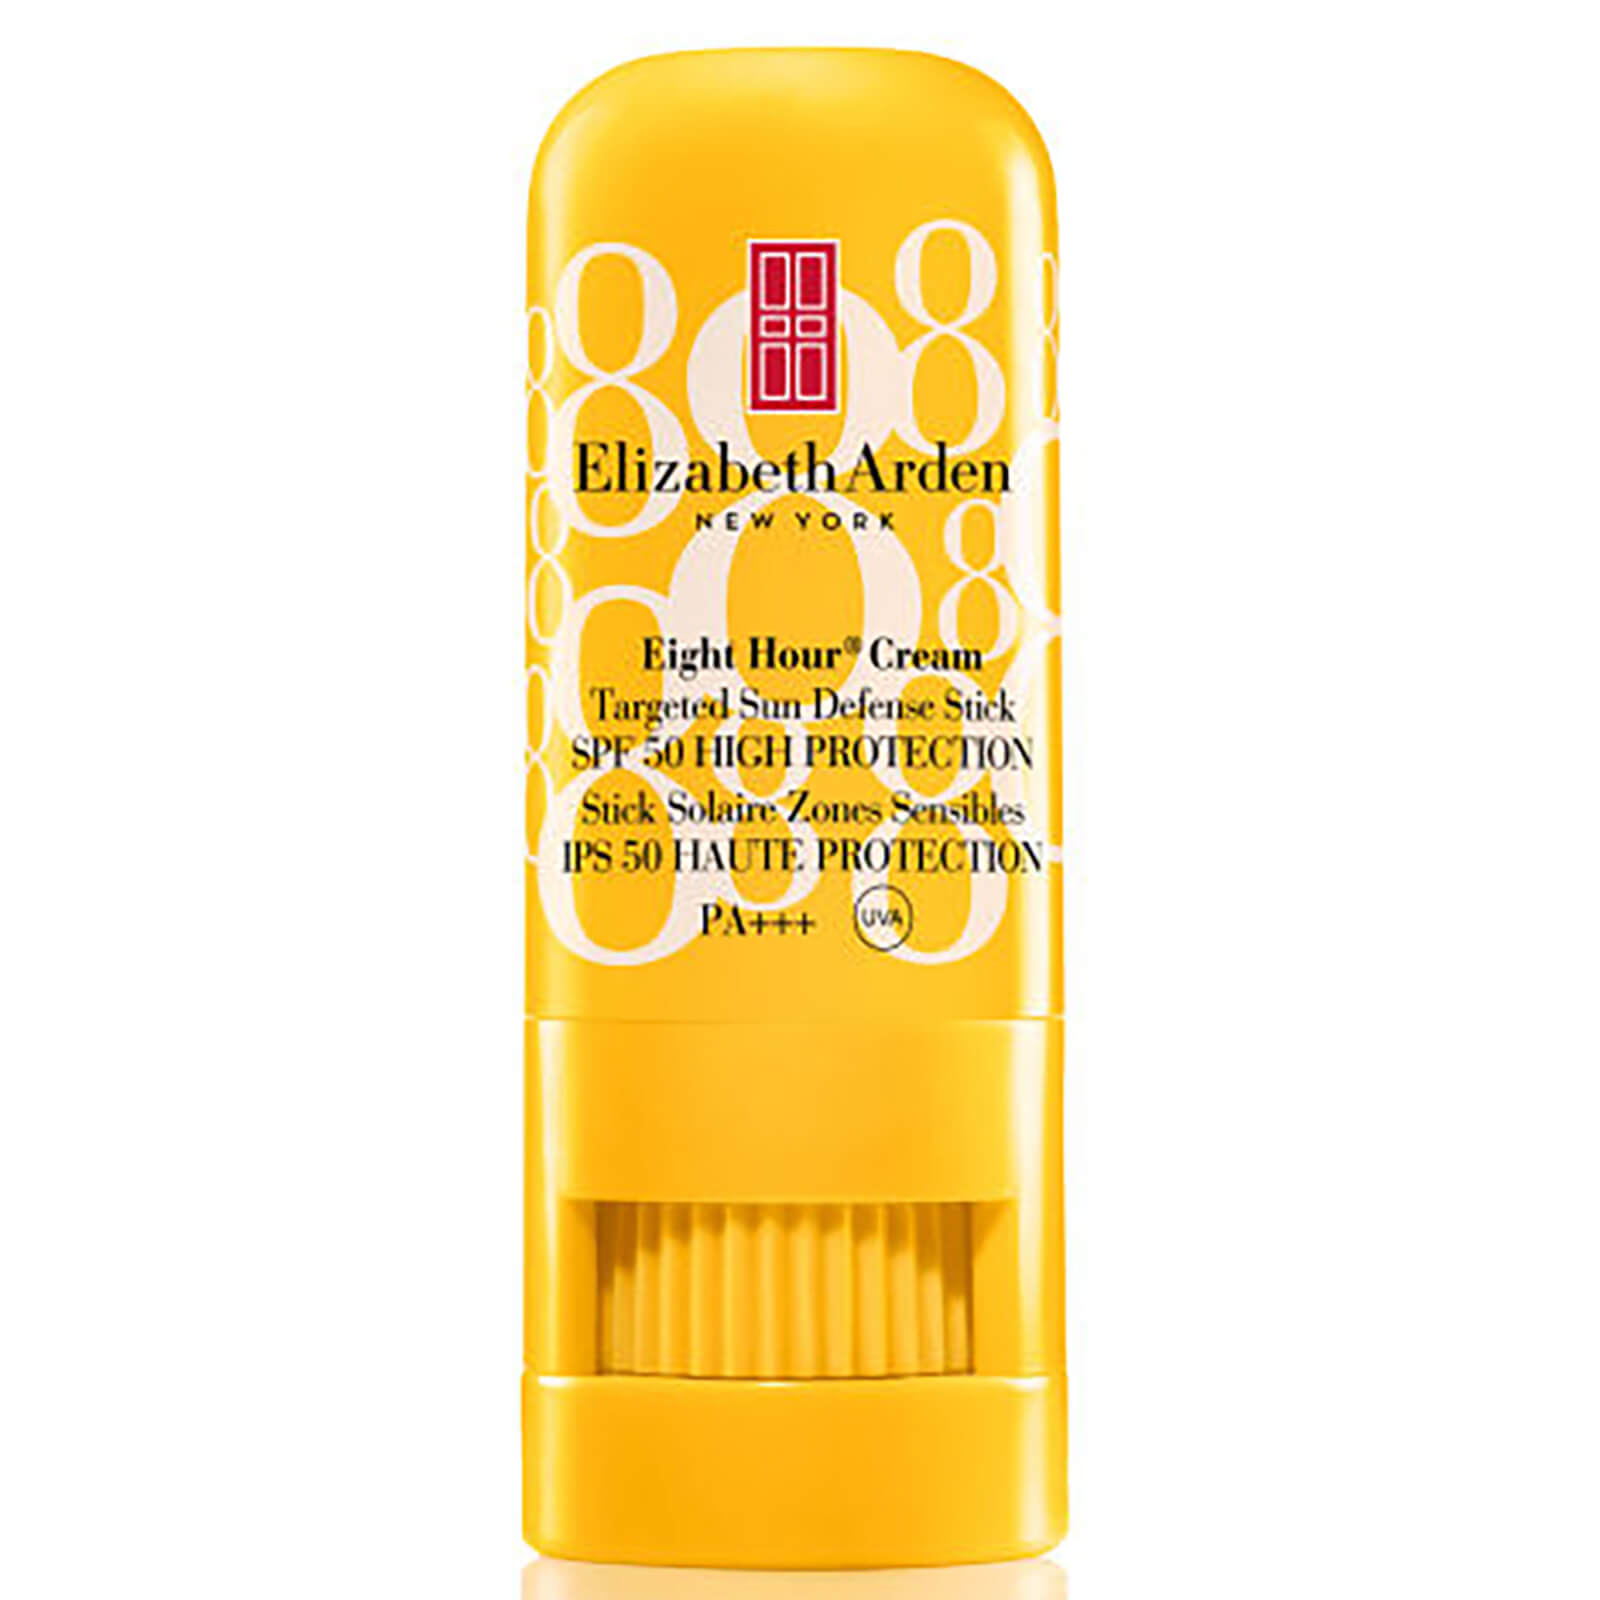 Stick de alta protección solar Eight Hour Cream Targeted Sun Defense Spf50 de Elizabeth Arden